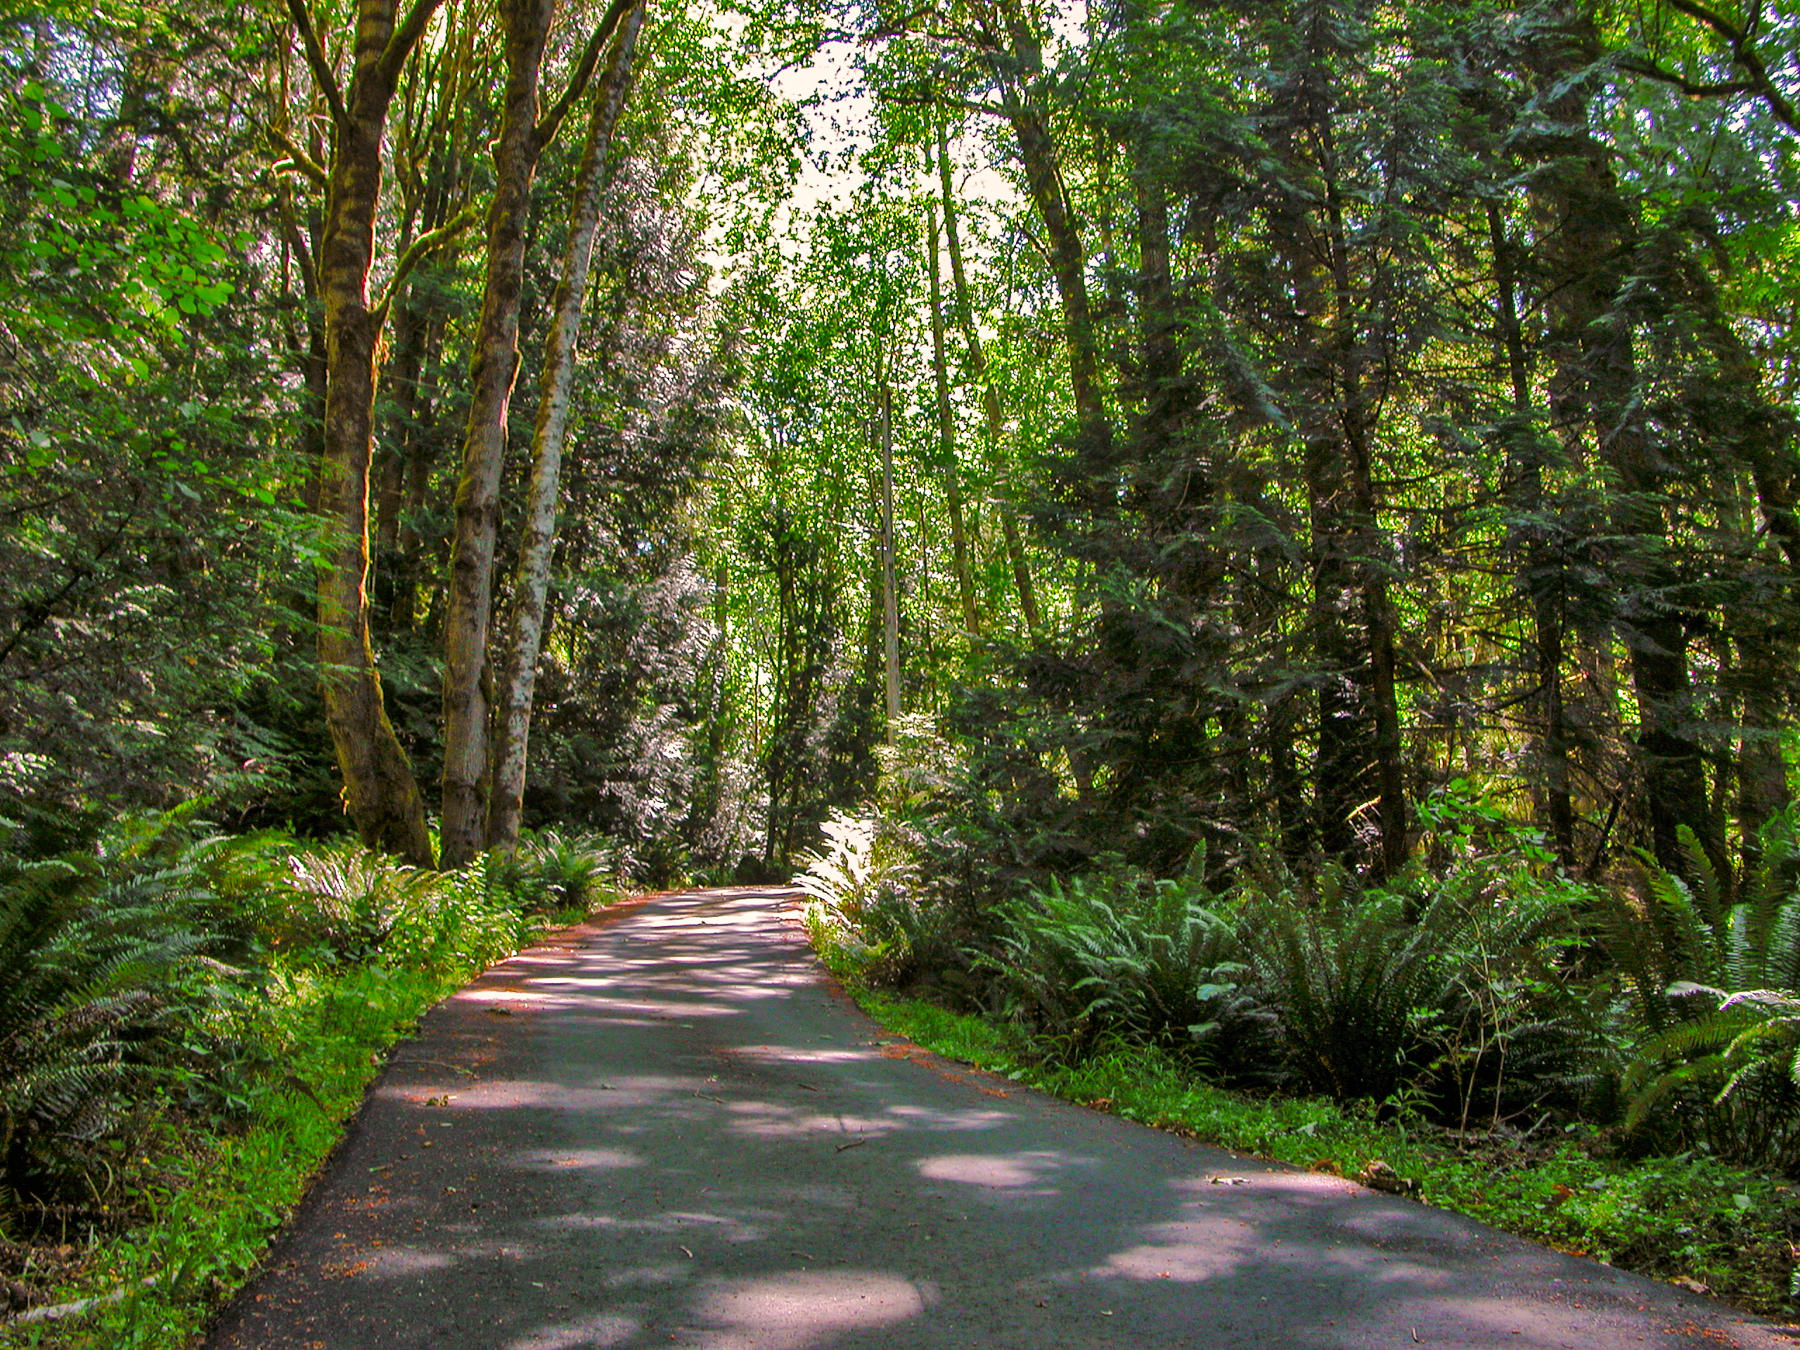 Seabeck, Washington. Narrow road with trees in temperate rainforest on Kitsap Peninsula.